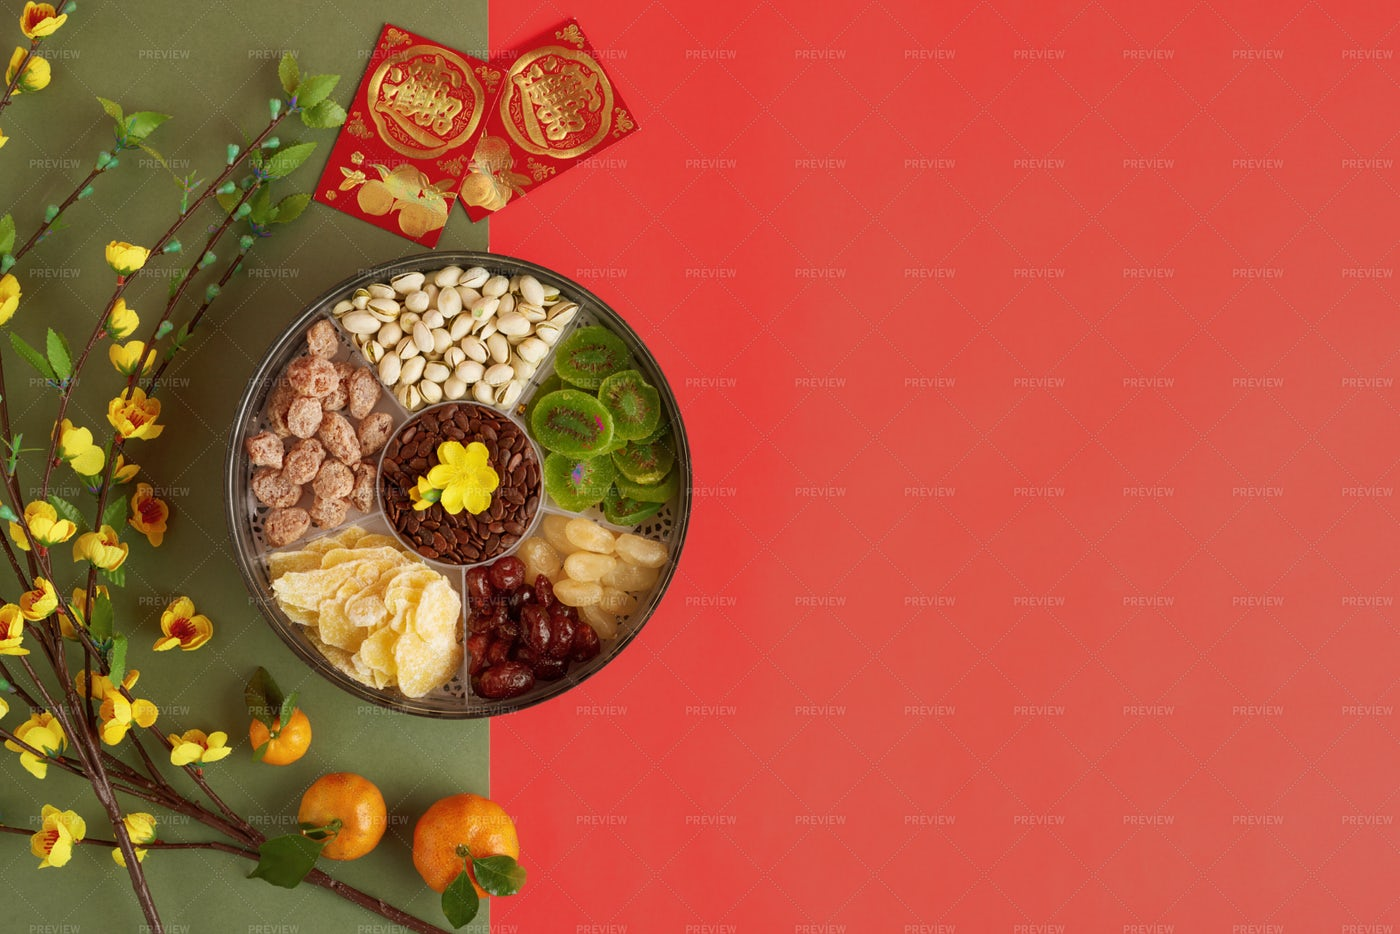 Sweets Snacks For Lunar Year: Stock Photos